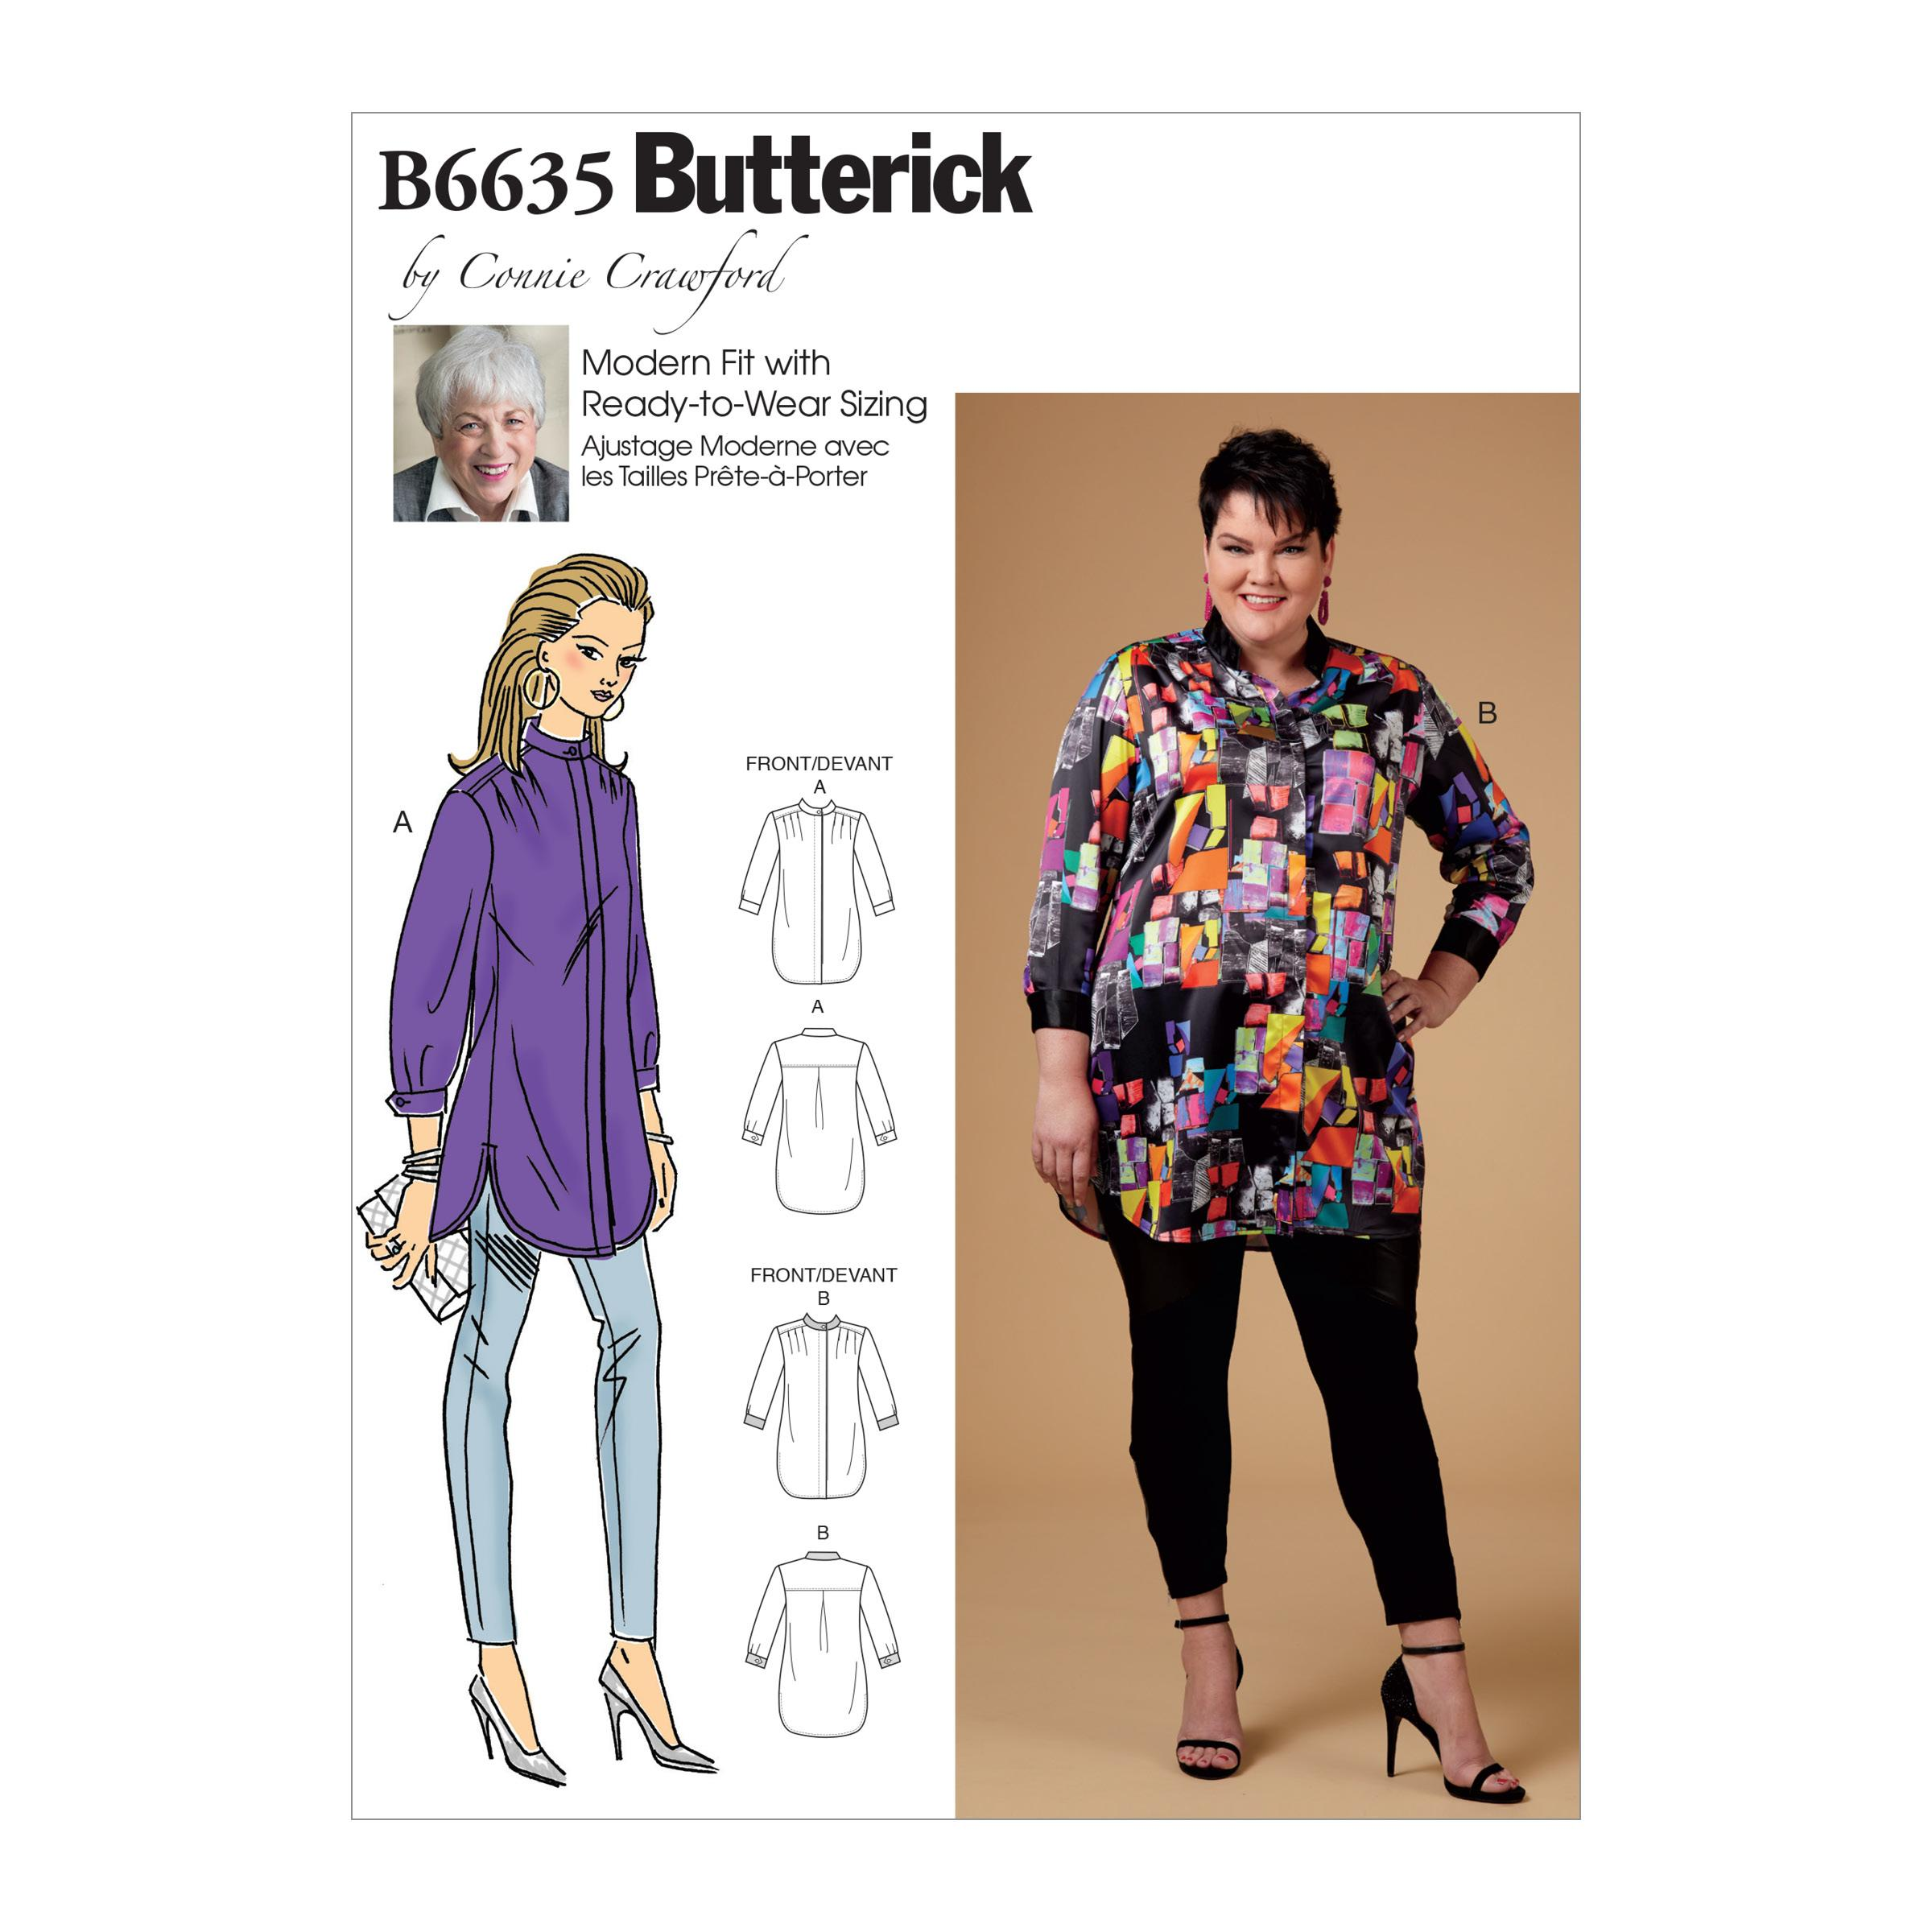 Butterick B6635 Misses', Women's Shirt